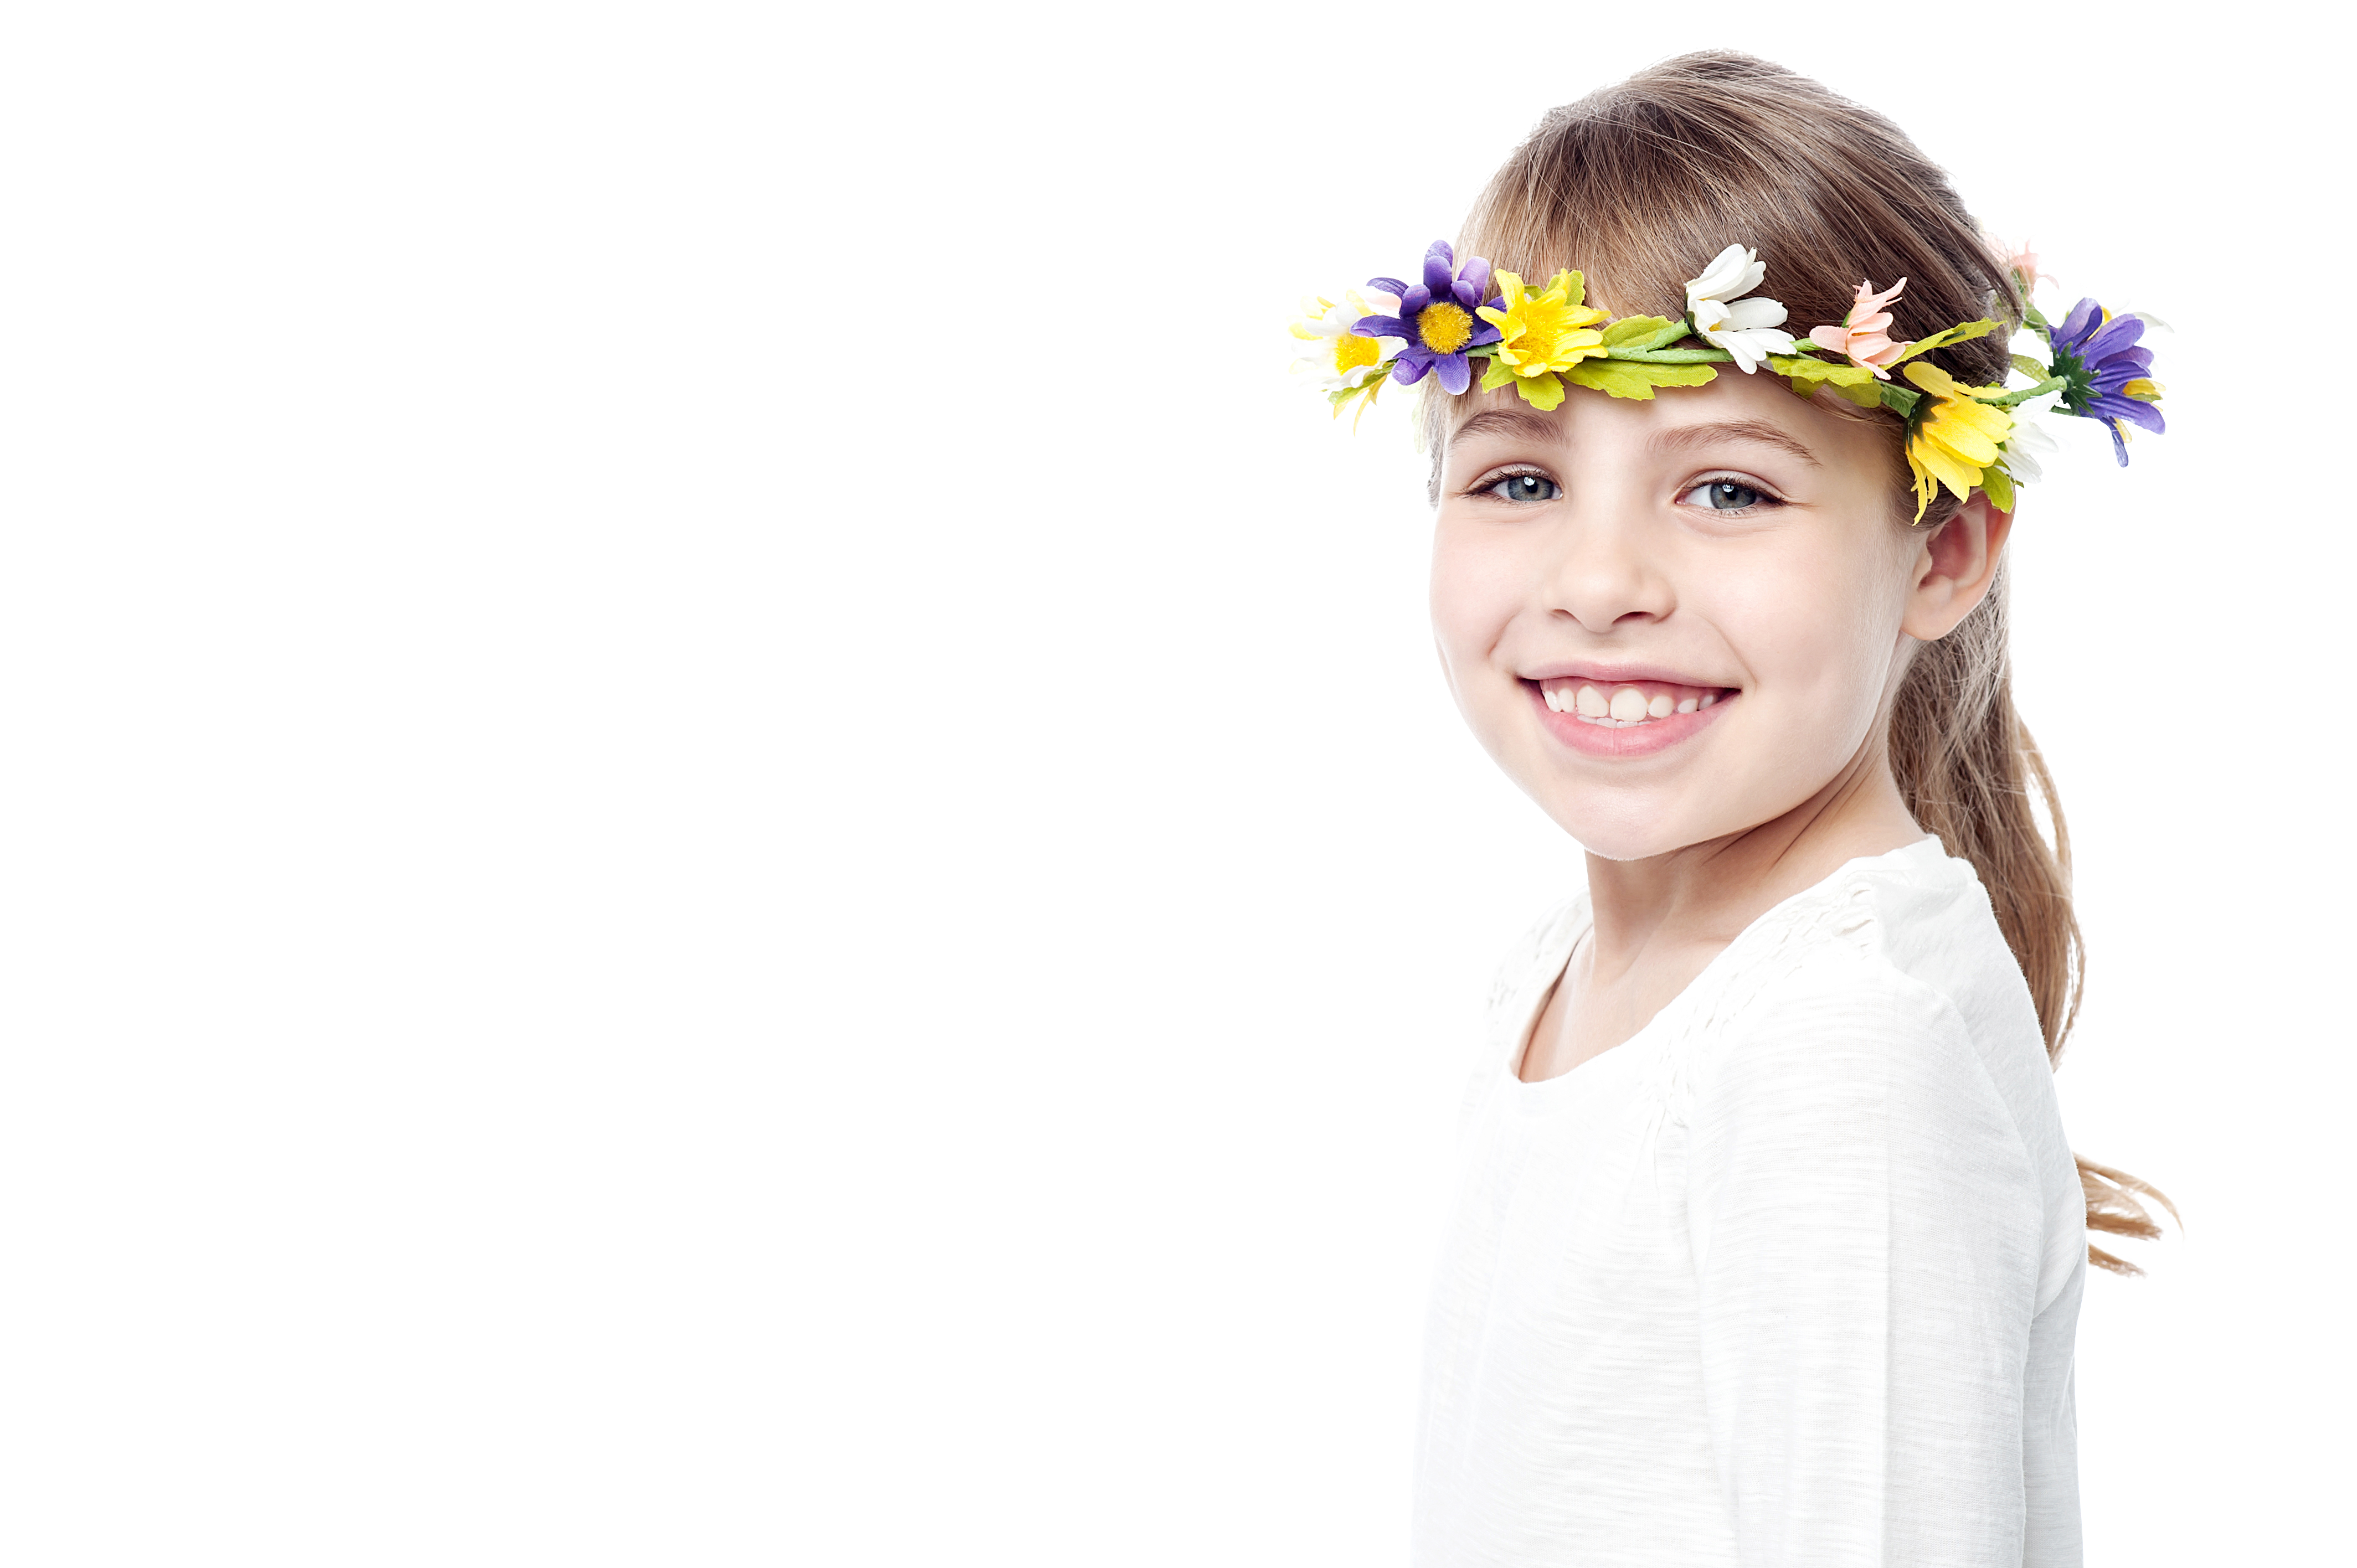 Child Girl PNG Image